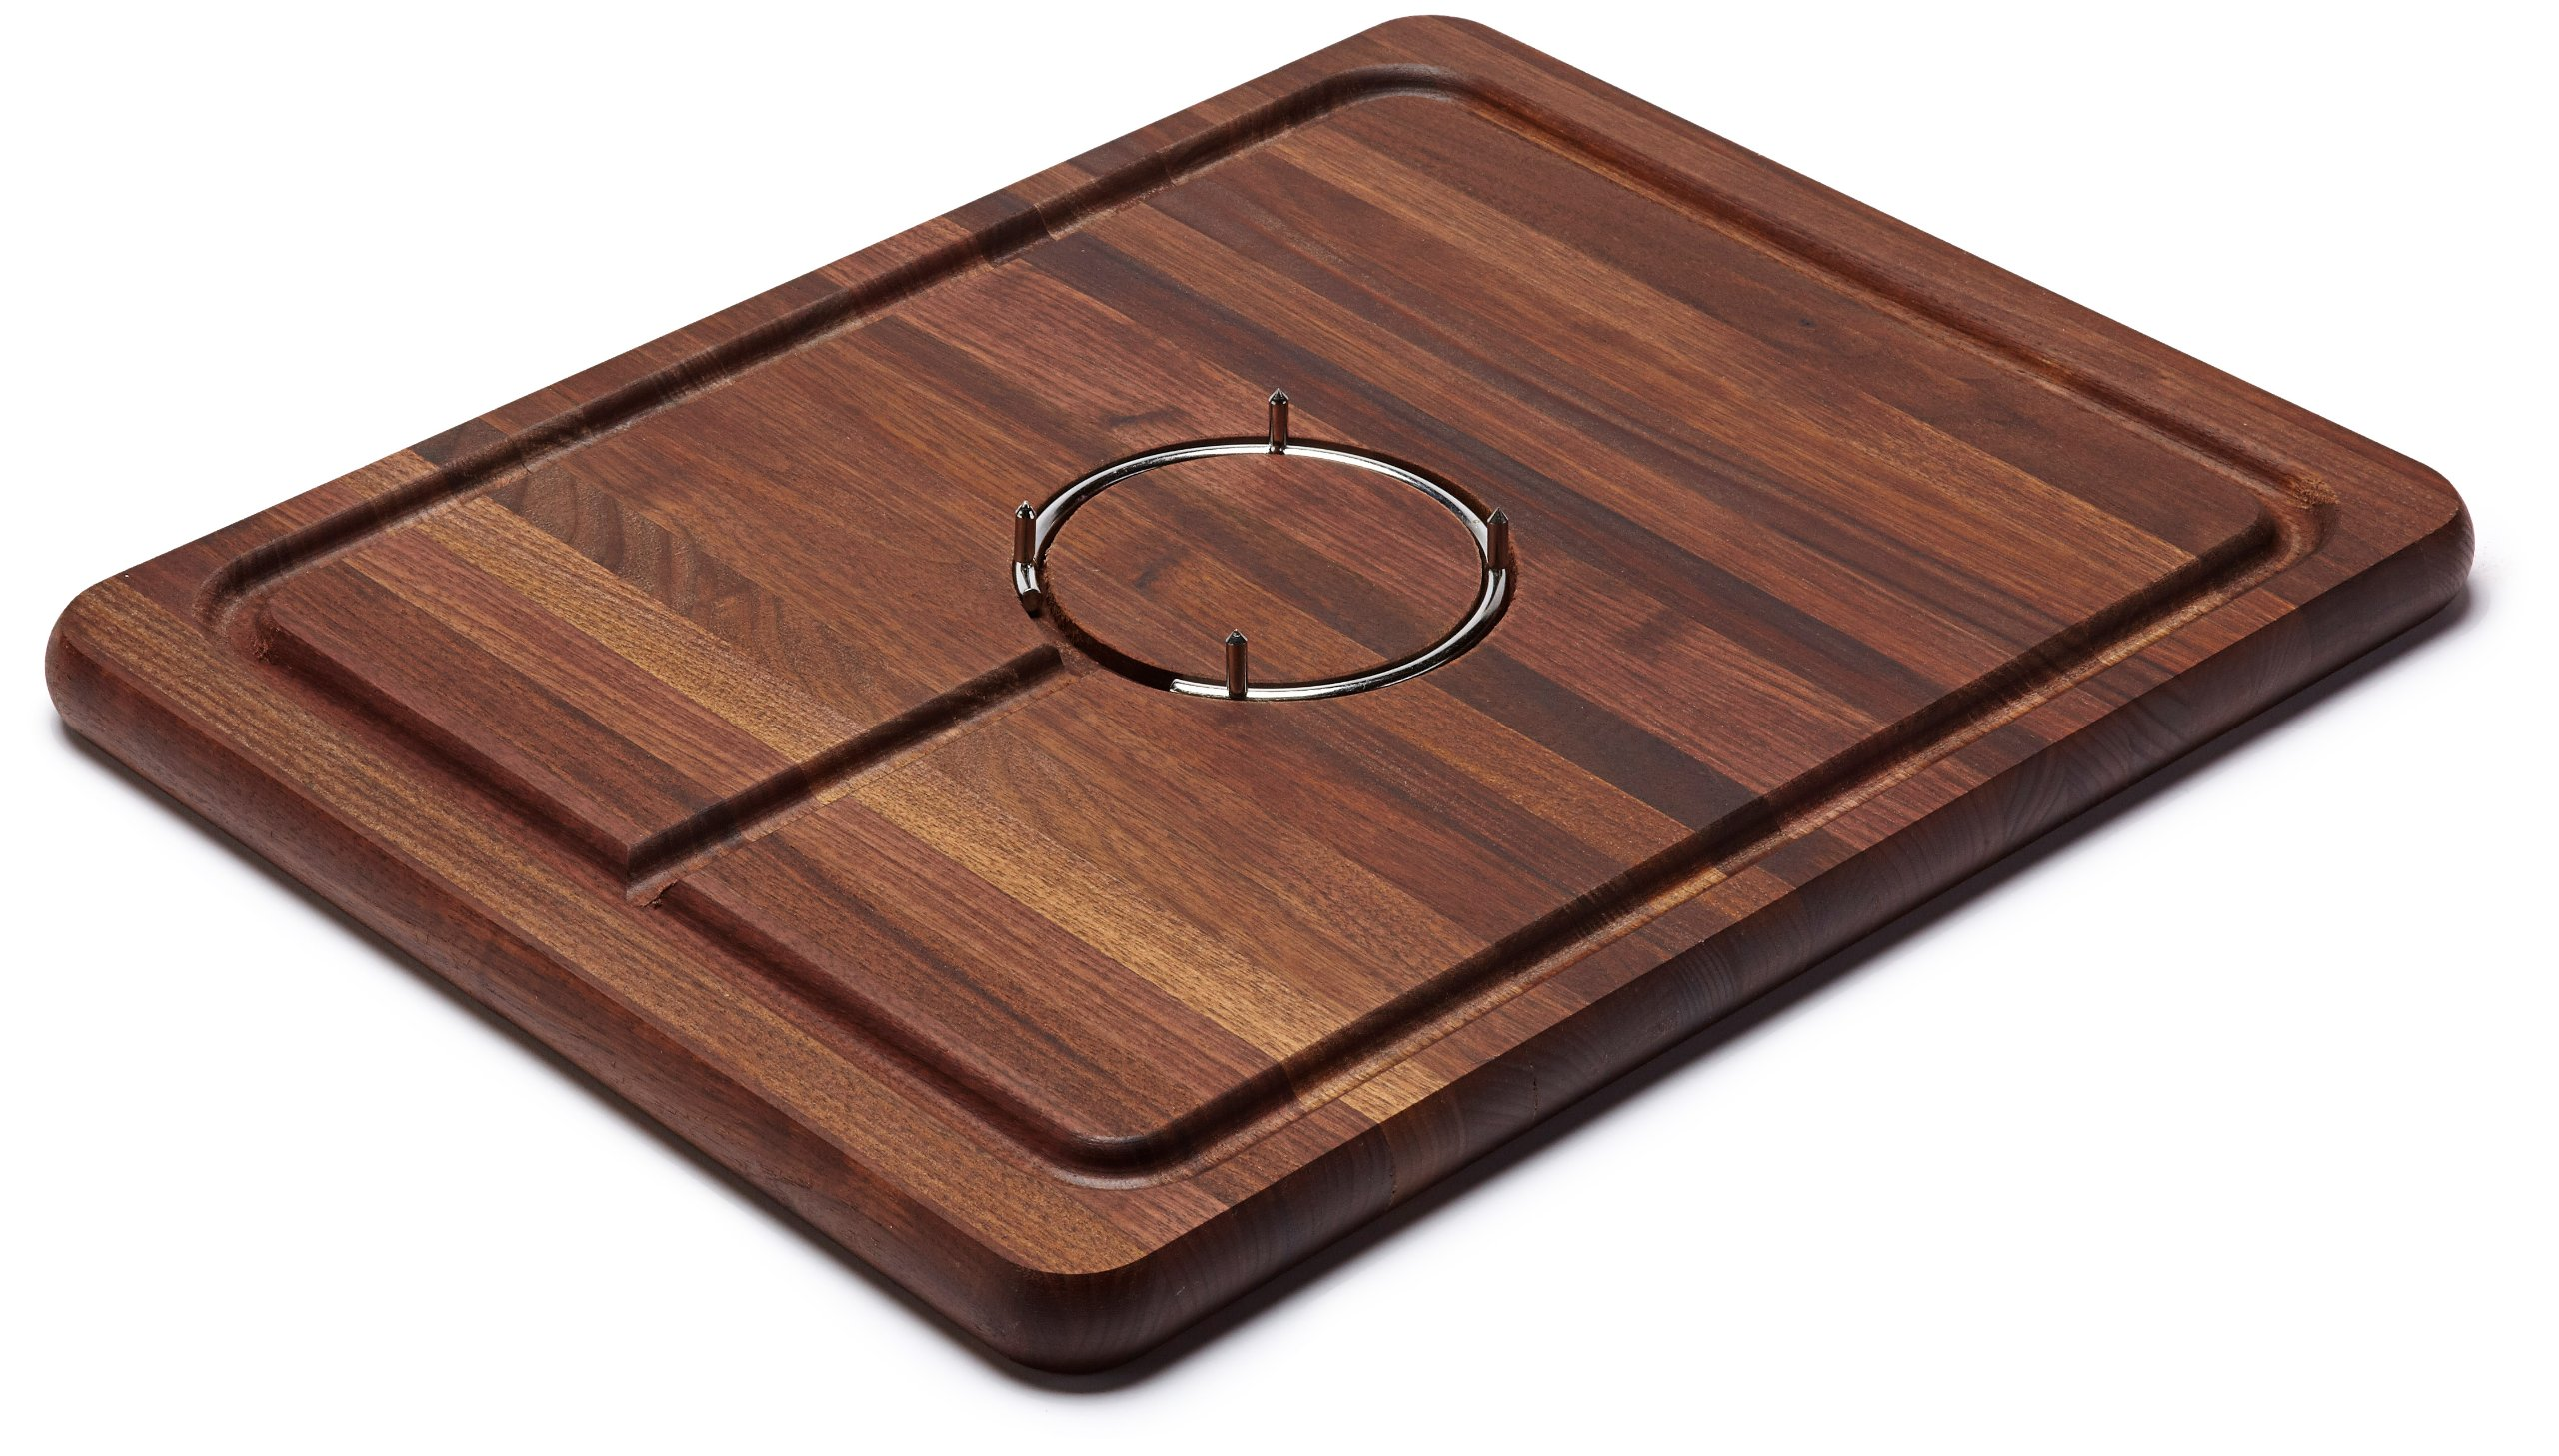 Snow River USA 7V03085 Hardwood Walnut Carving Board Stainless Steel Gripping Ring and Juice Well, 14'' x 18'' x 1''